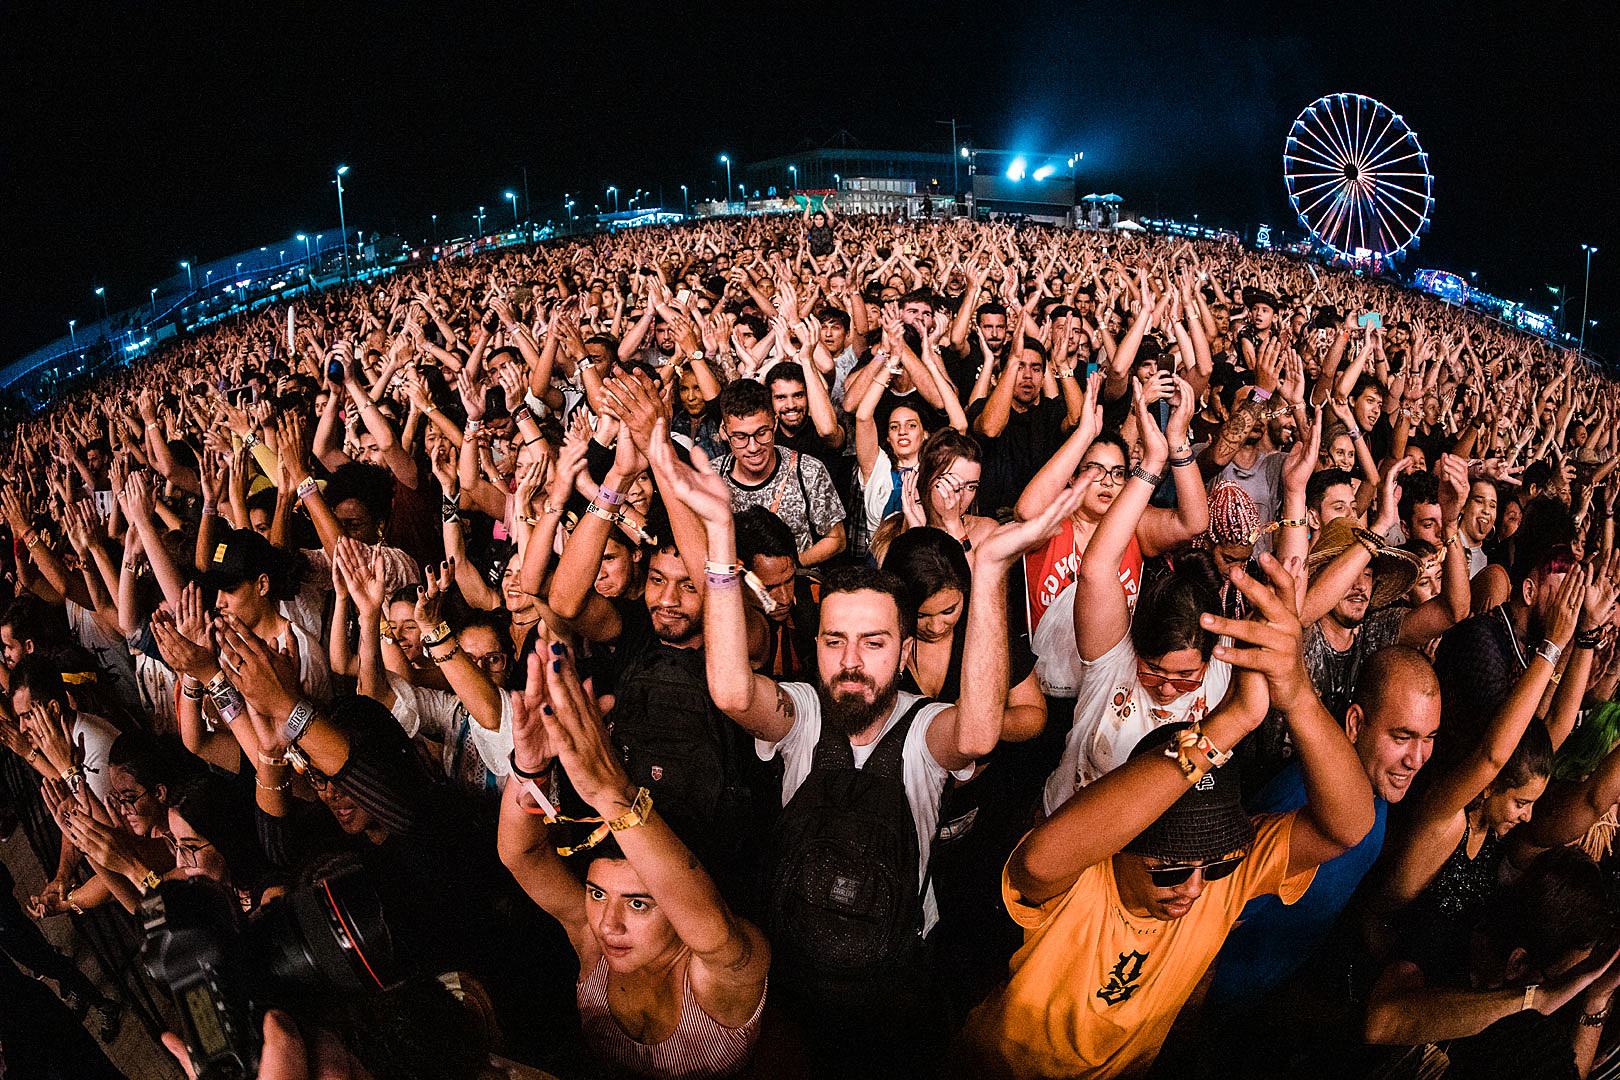 Rock in Rio 2021 Festivals in Lisbon and Brazil Are Canceled